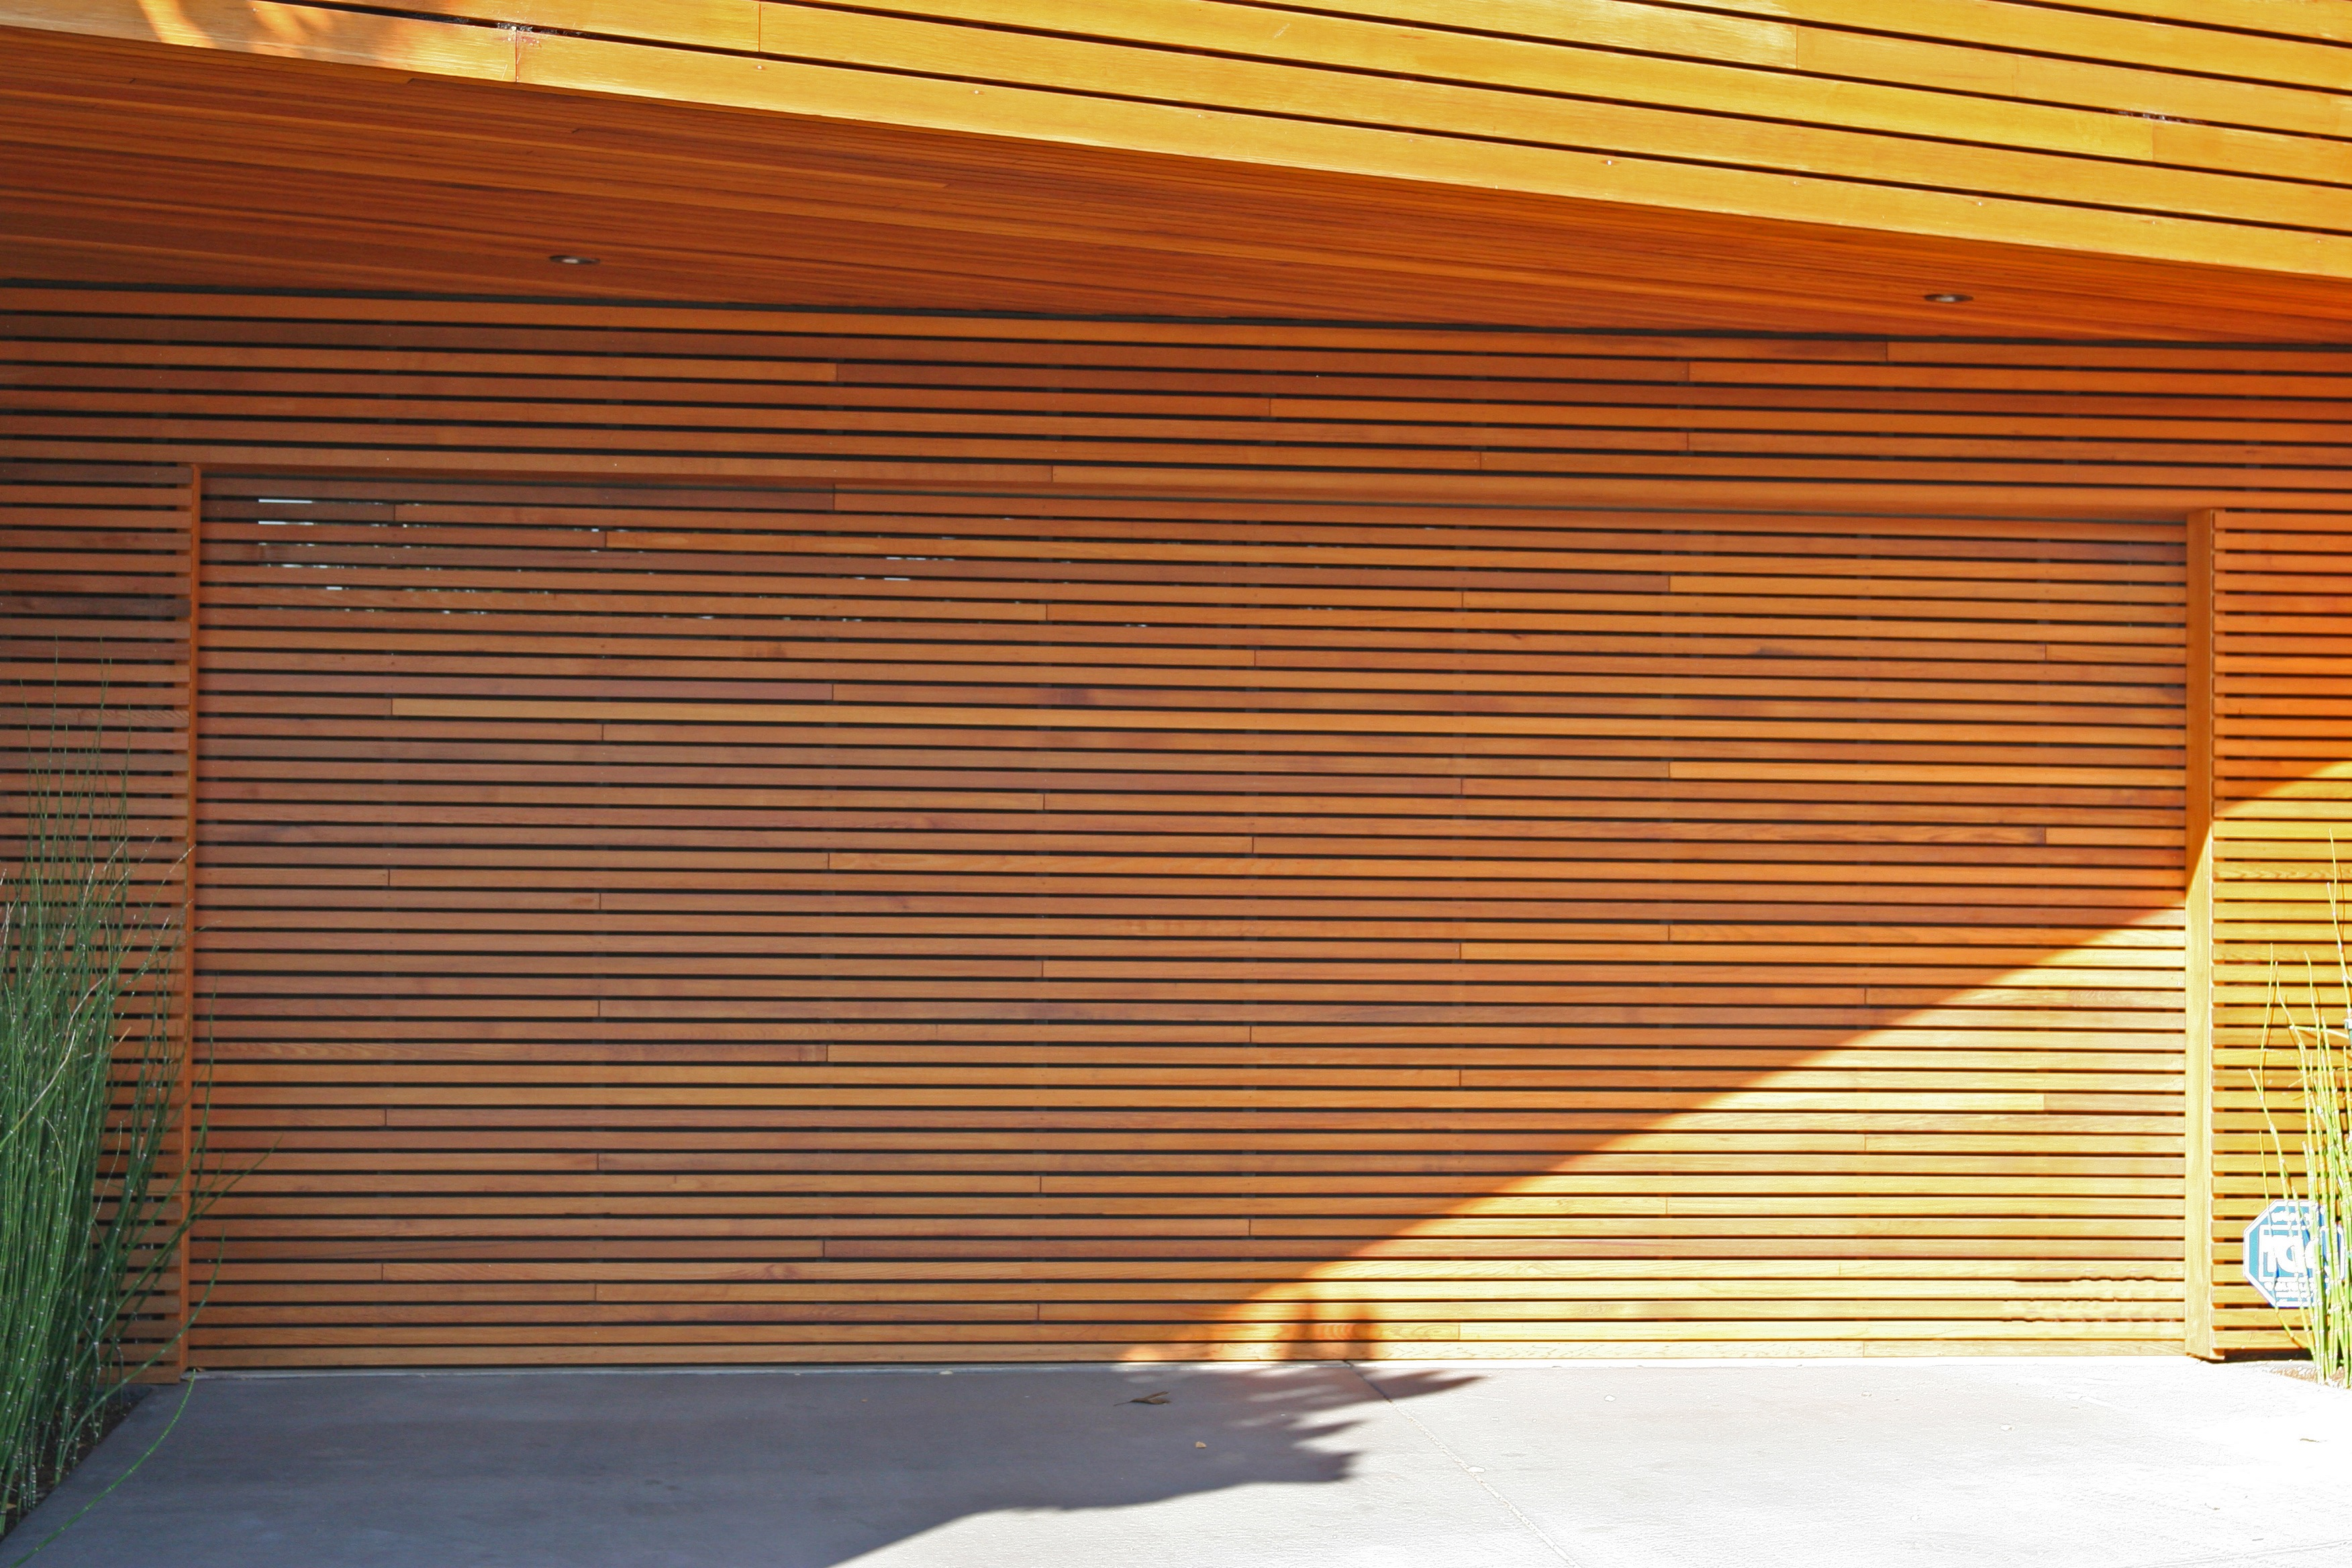 Exterior Facade Of A Cedar Garage Door (Image 15 of 38)